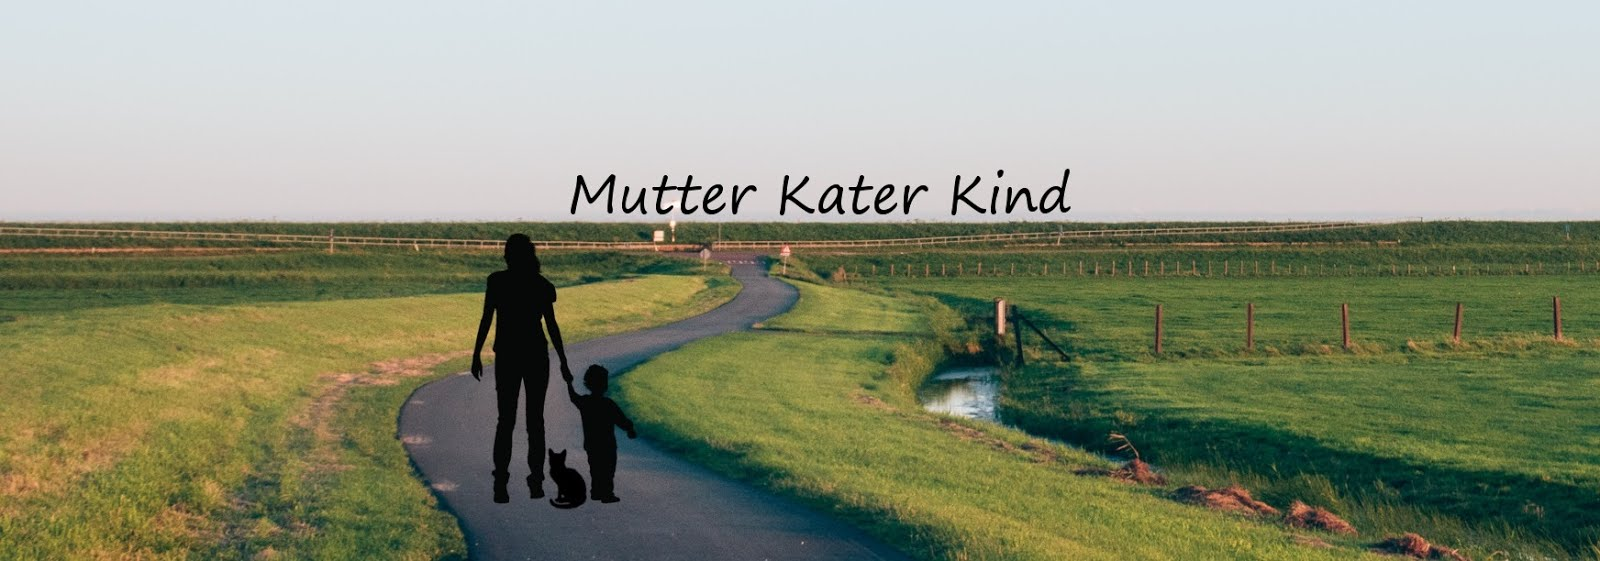 Mutter, Kater, Kind